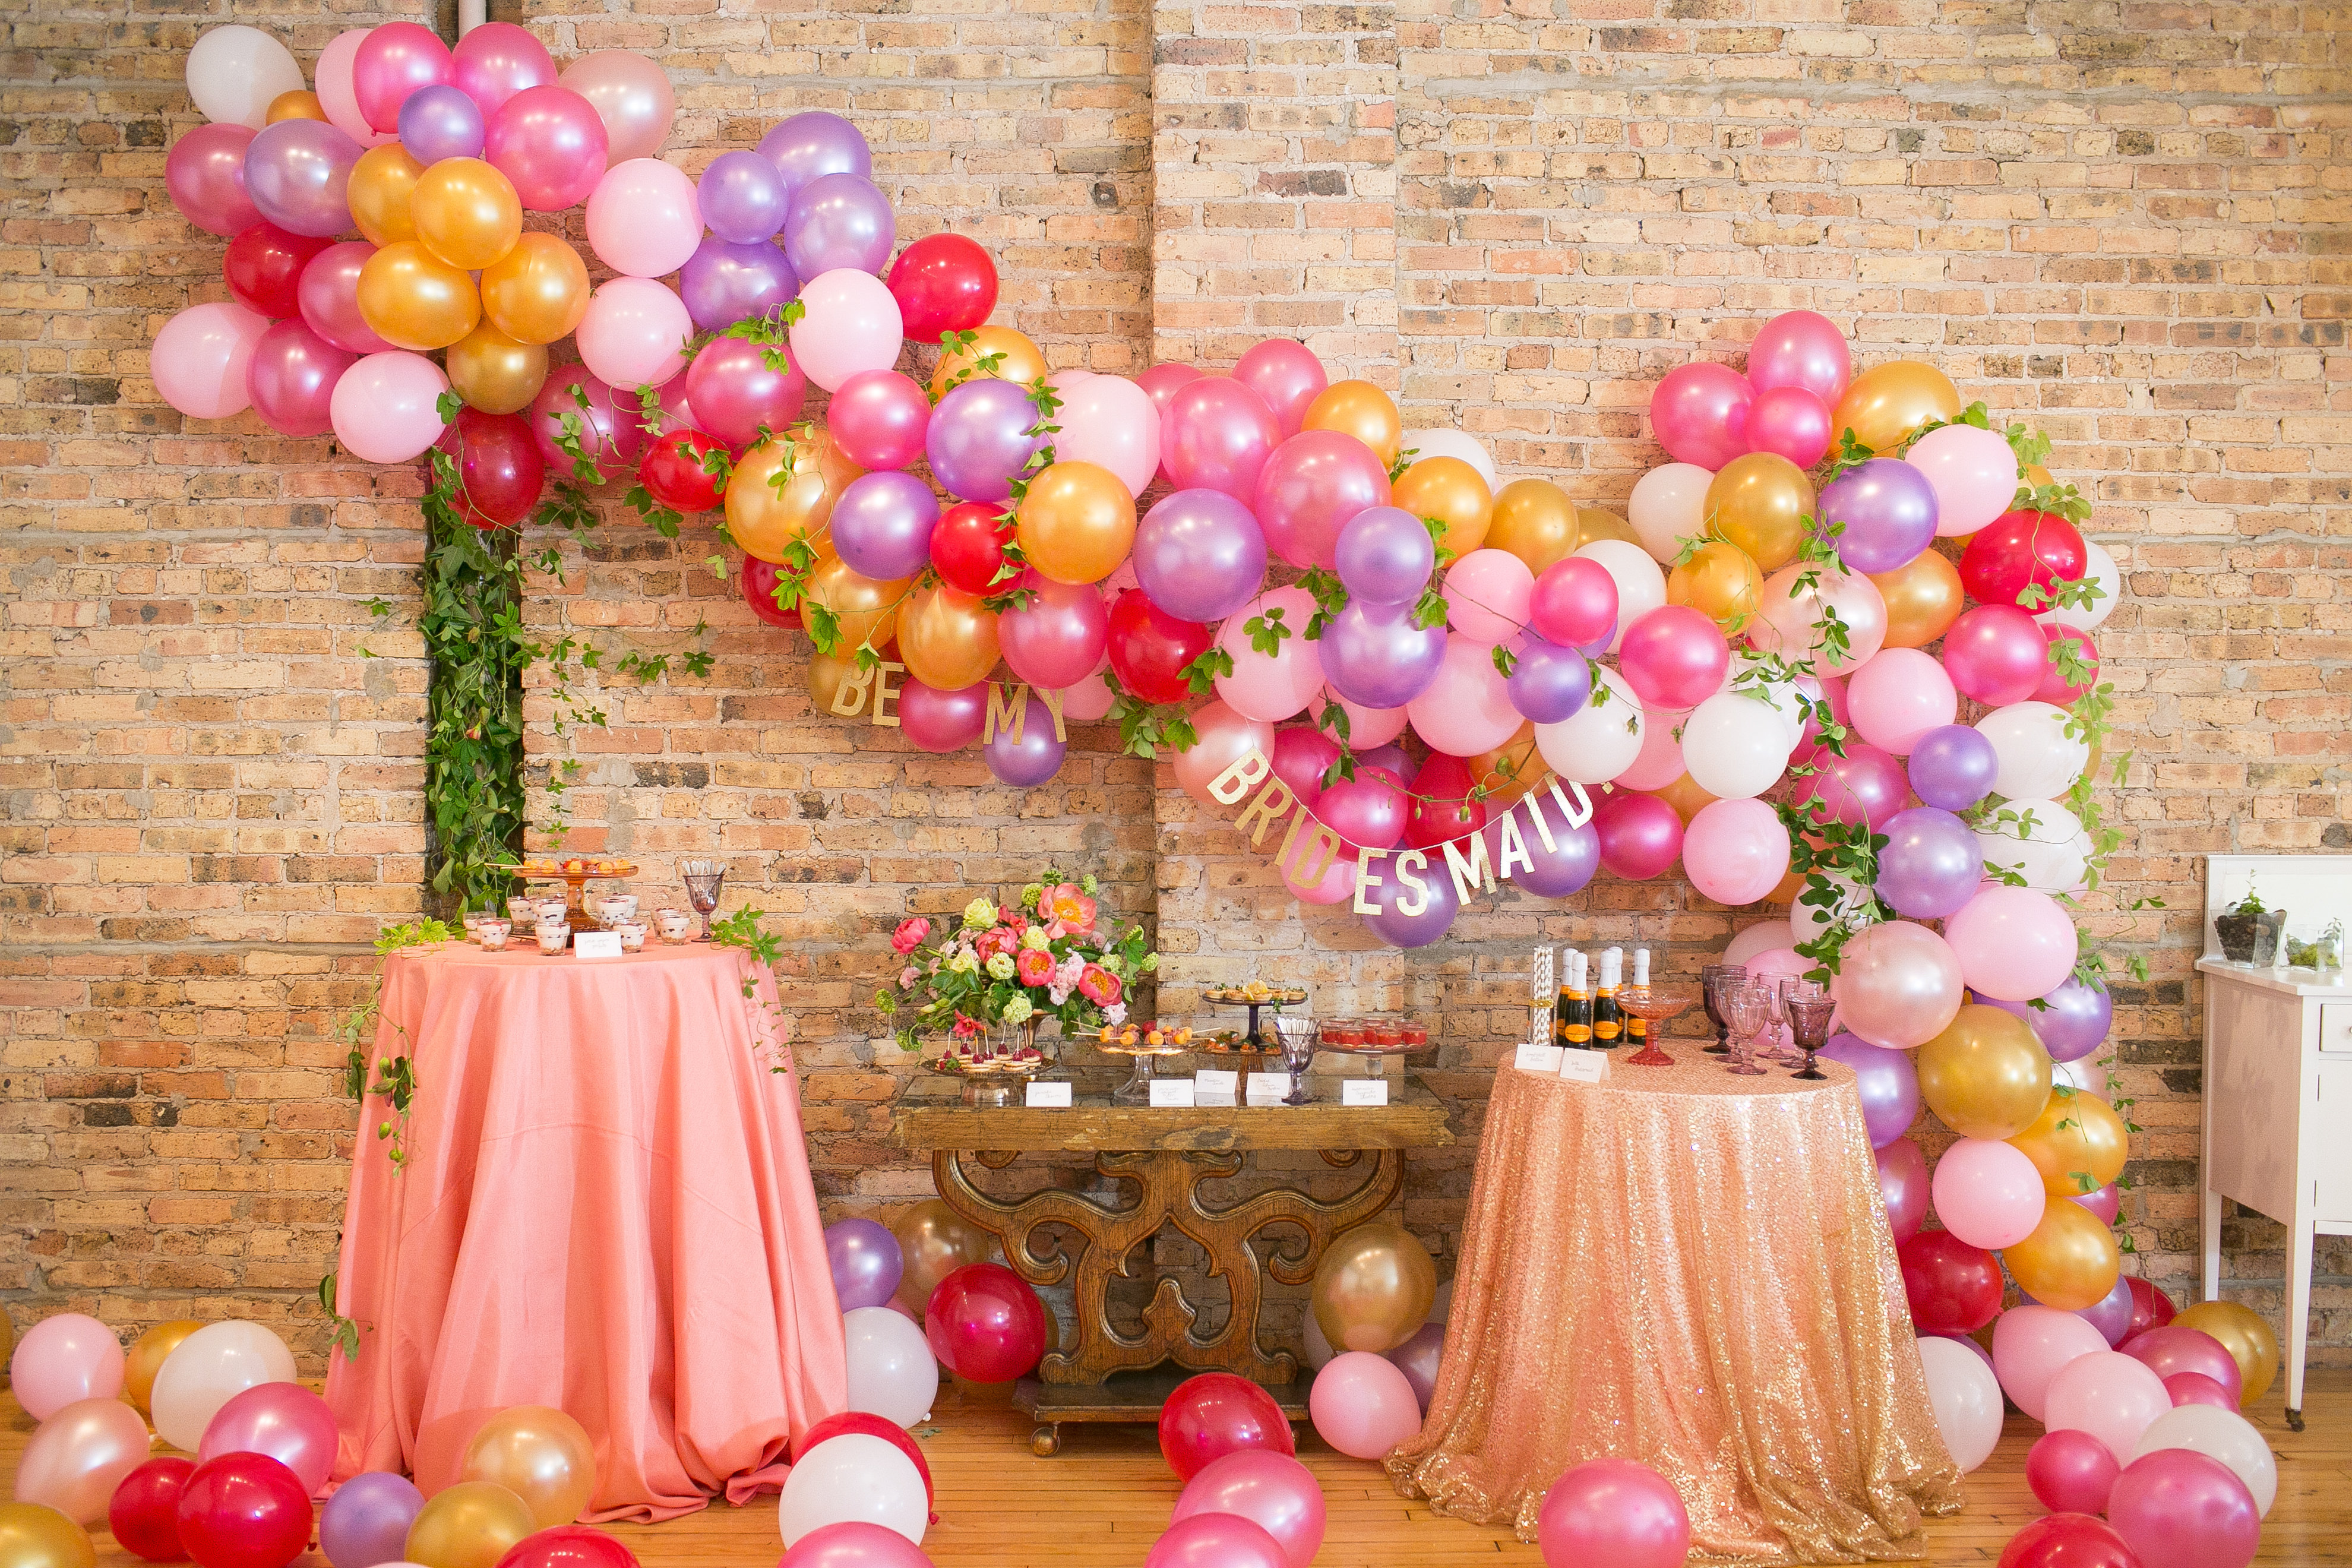 Balloon arches can be chic! Pamper your peeps with a beauty bash for an occasion... or just because you love them!